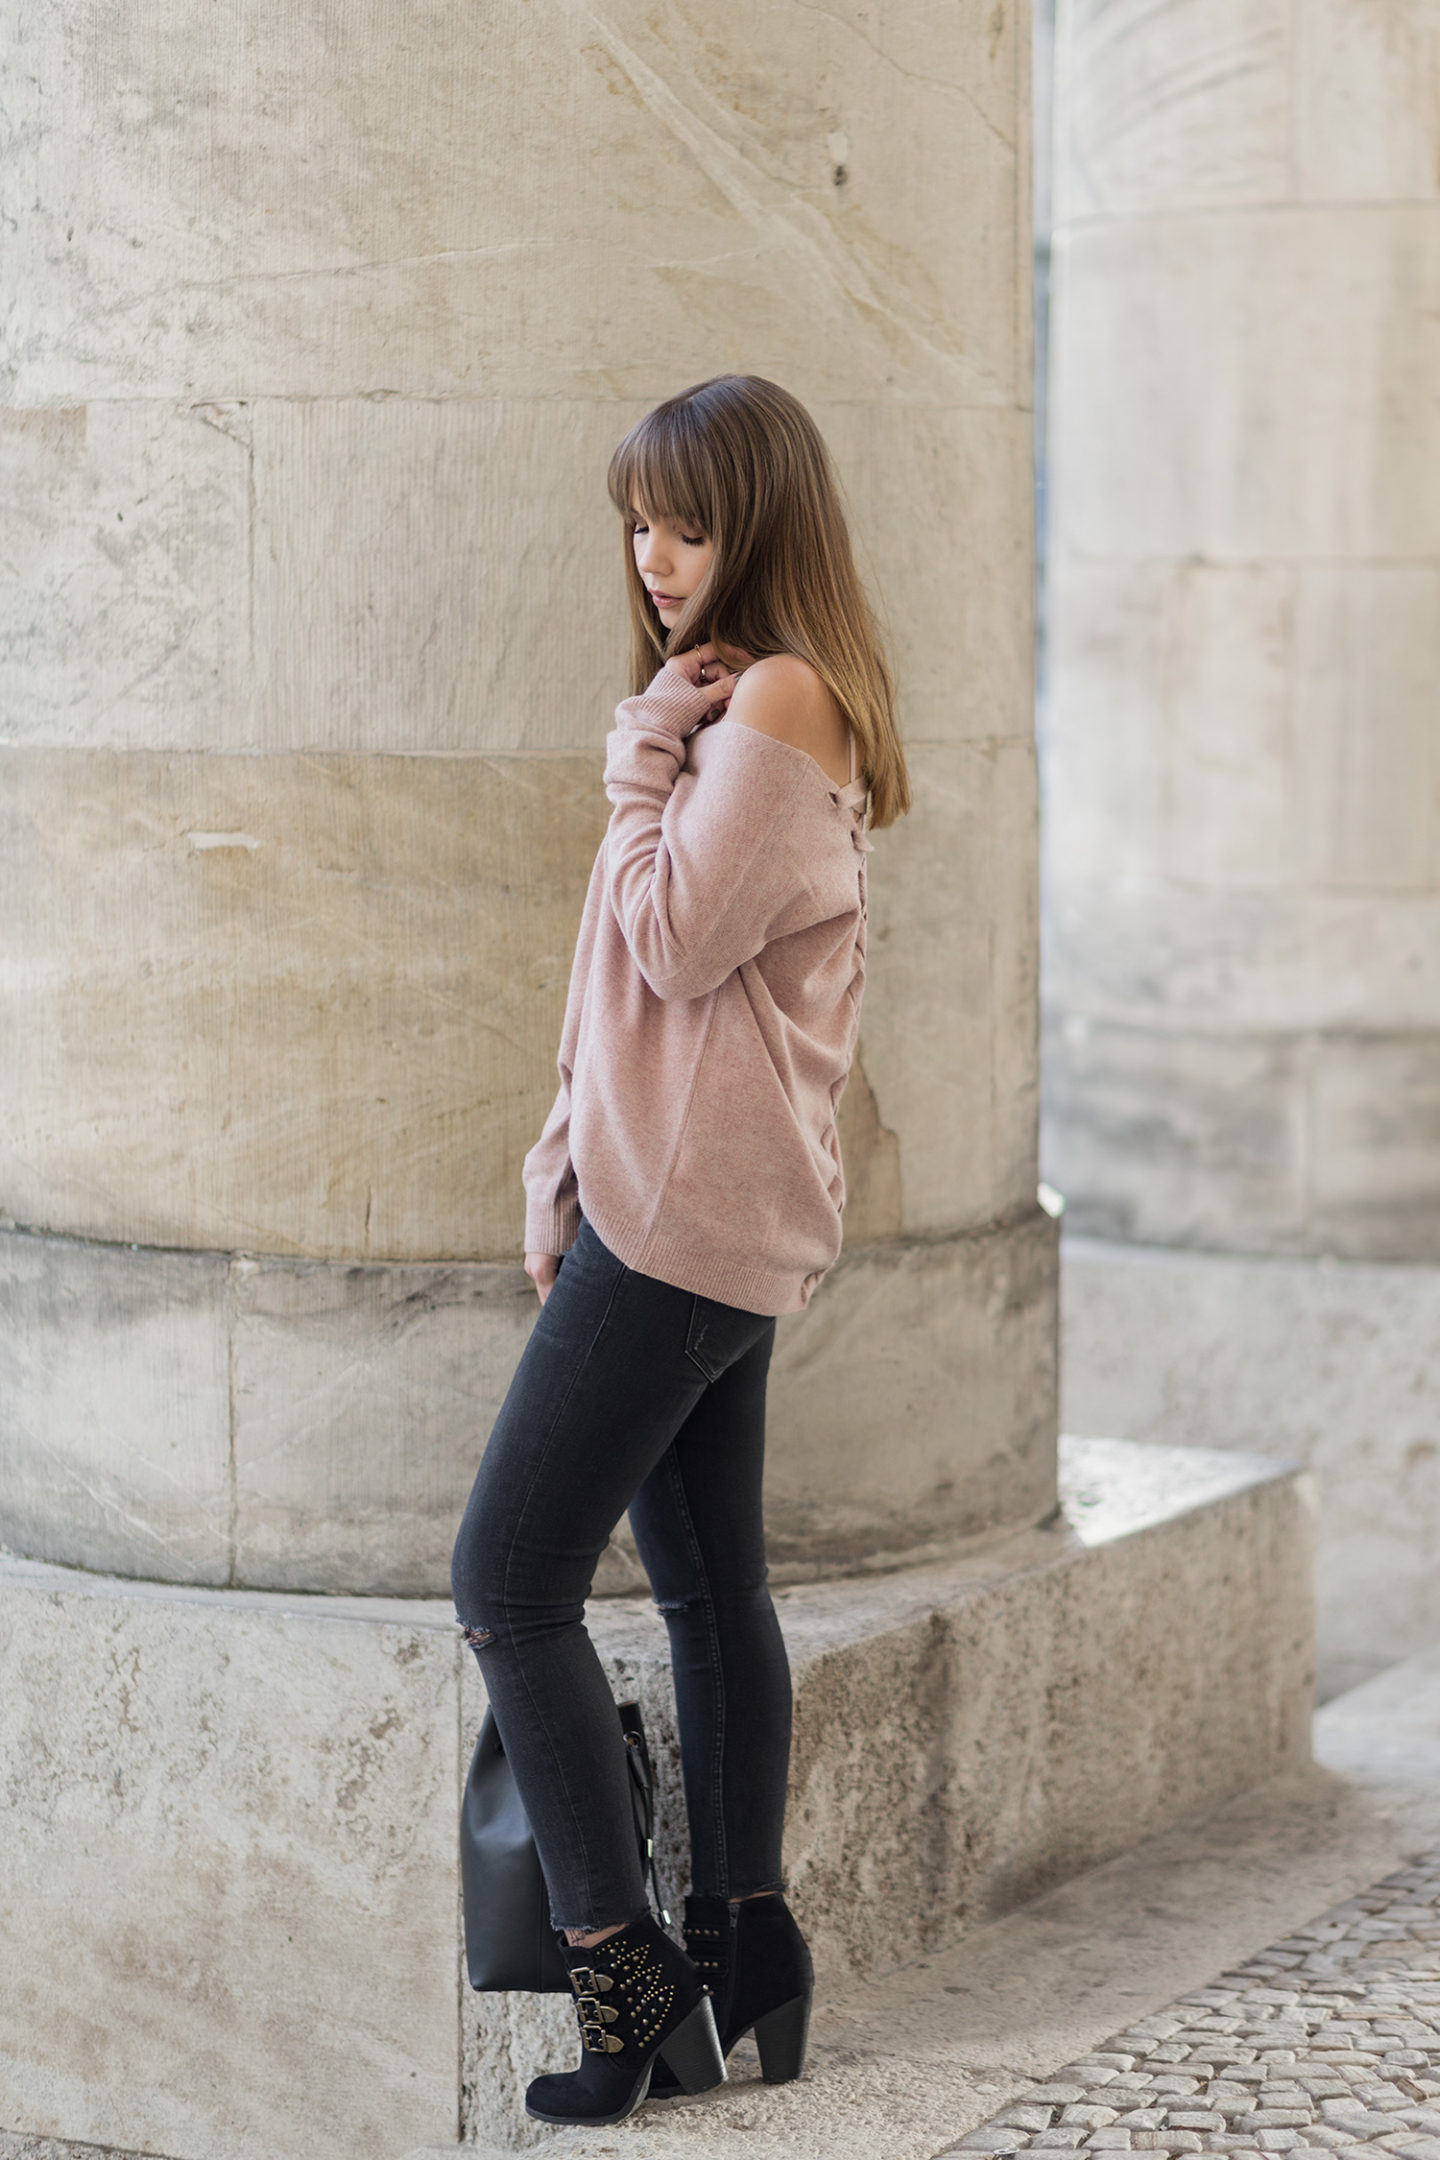 Rosa Kaschmir Pullover Cashmere Repeat Herbst Outfit Trend BoxdeCr